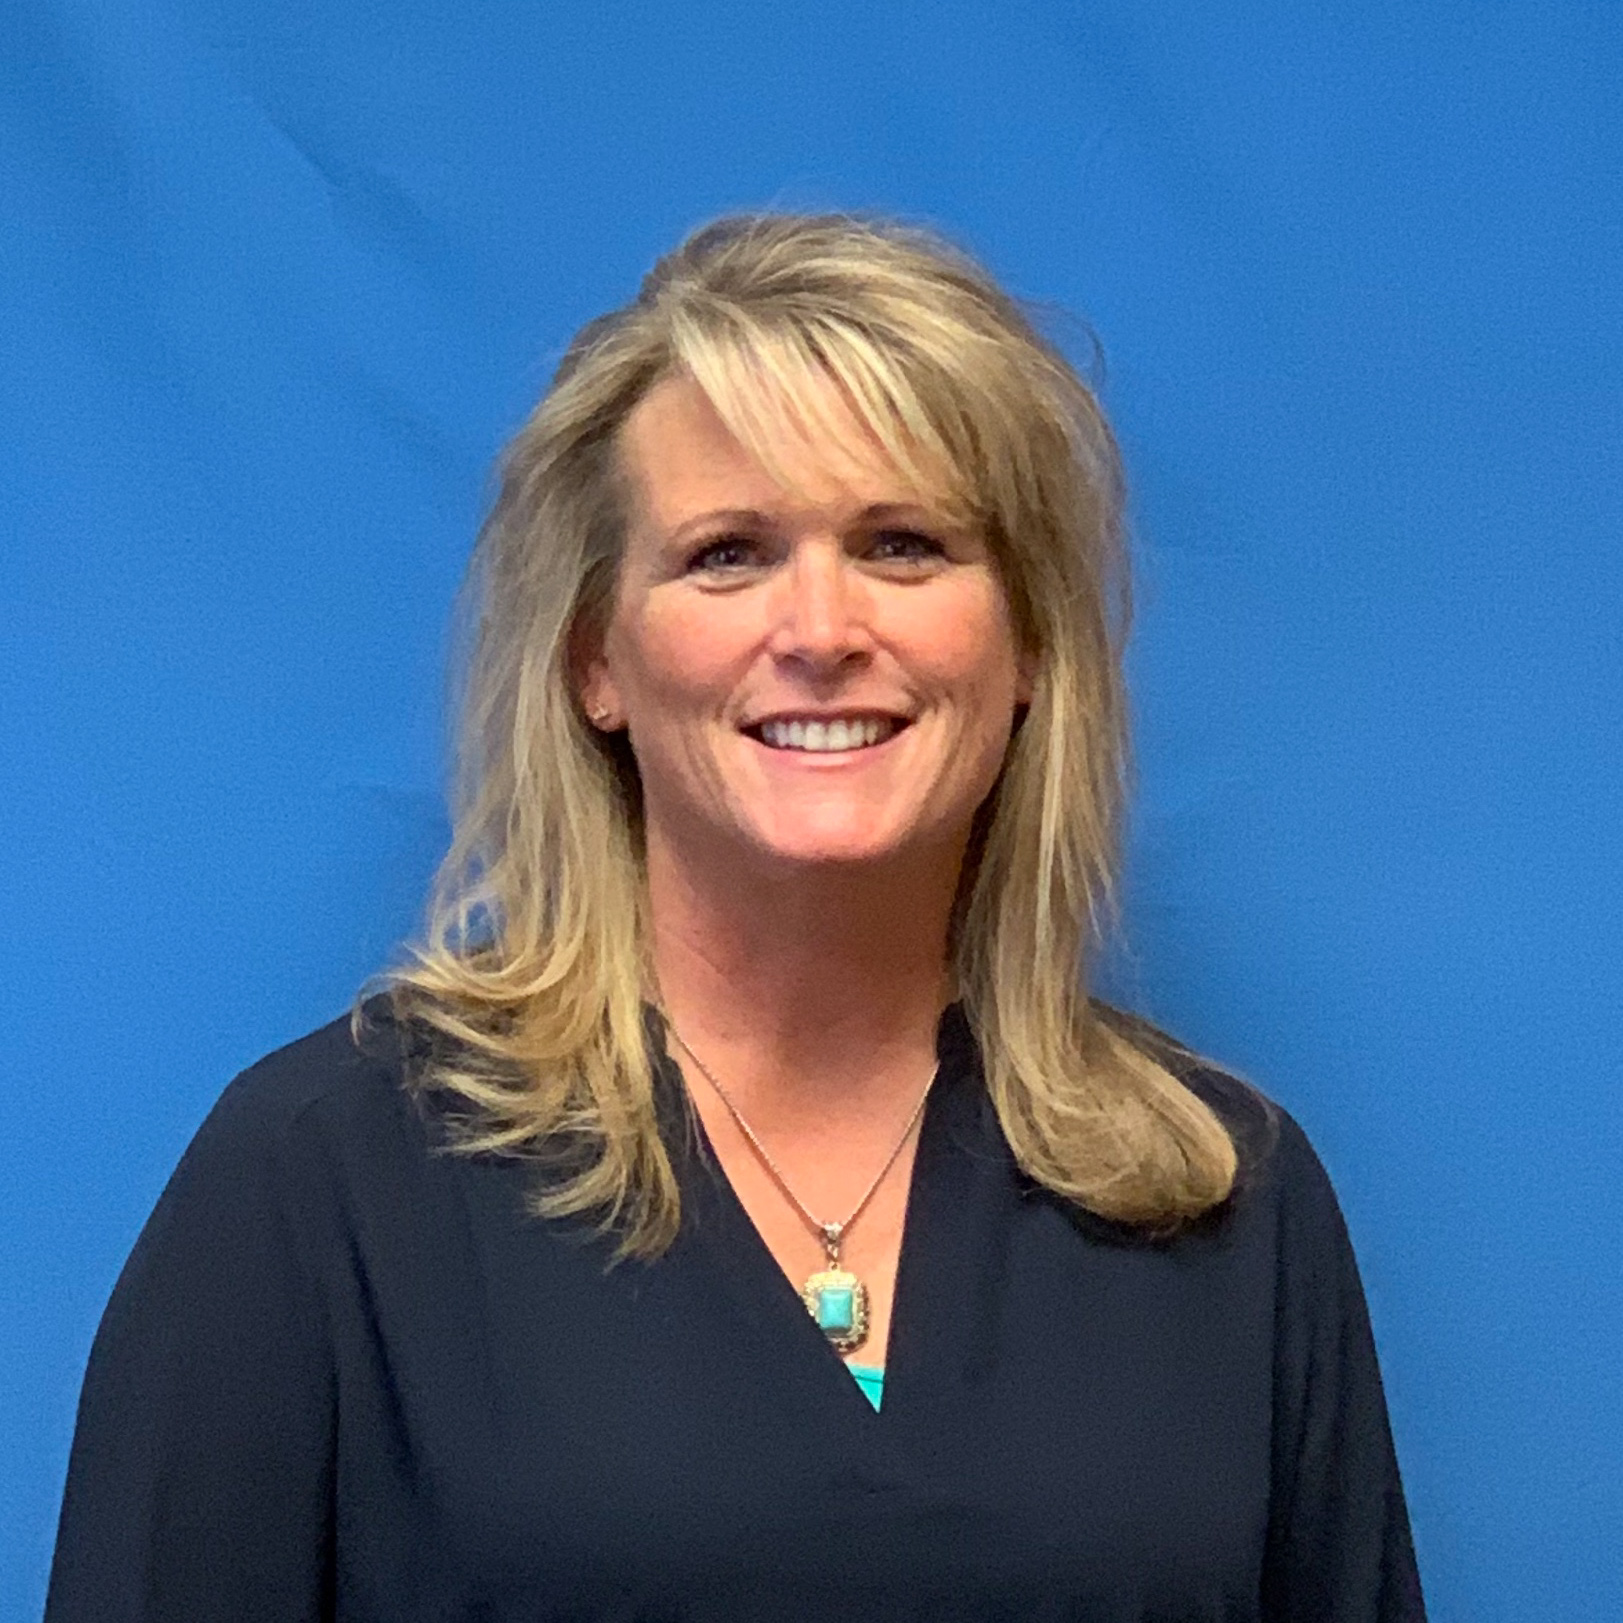 Staff Photo of Cindy Sallee